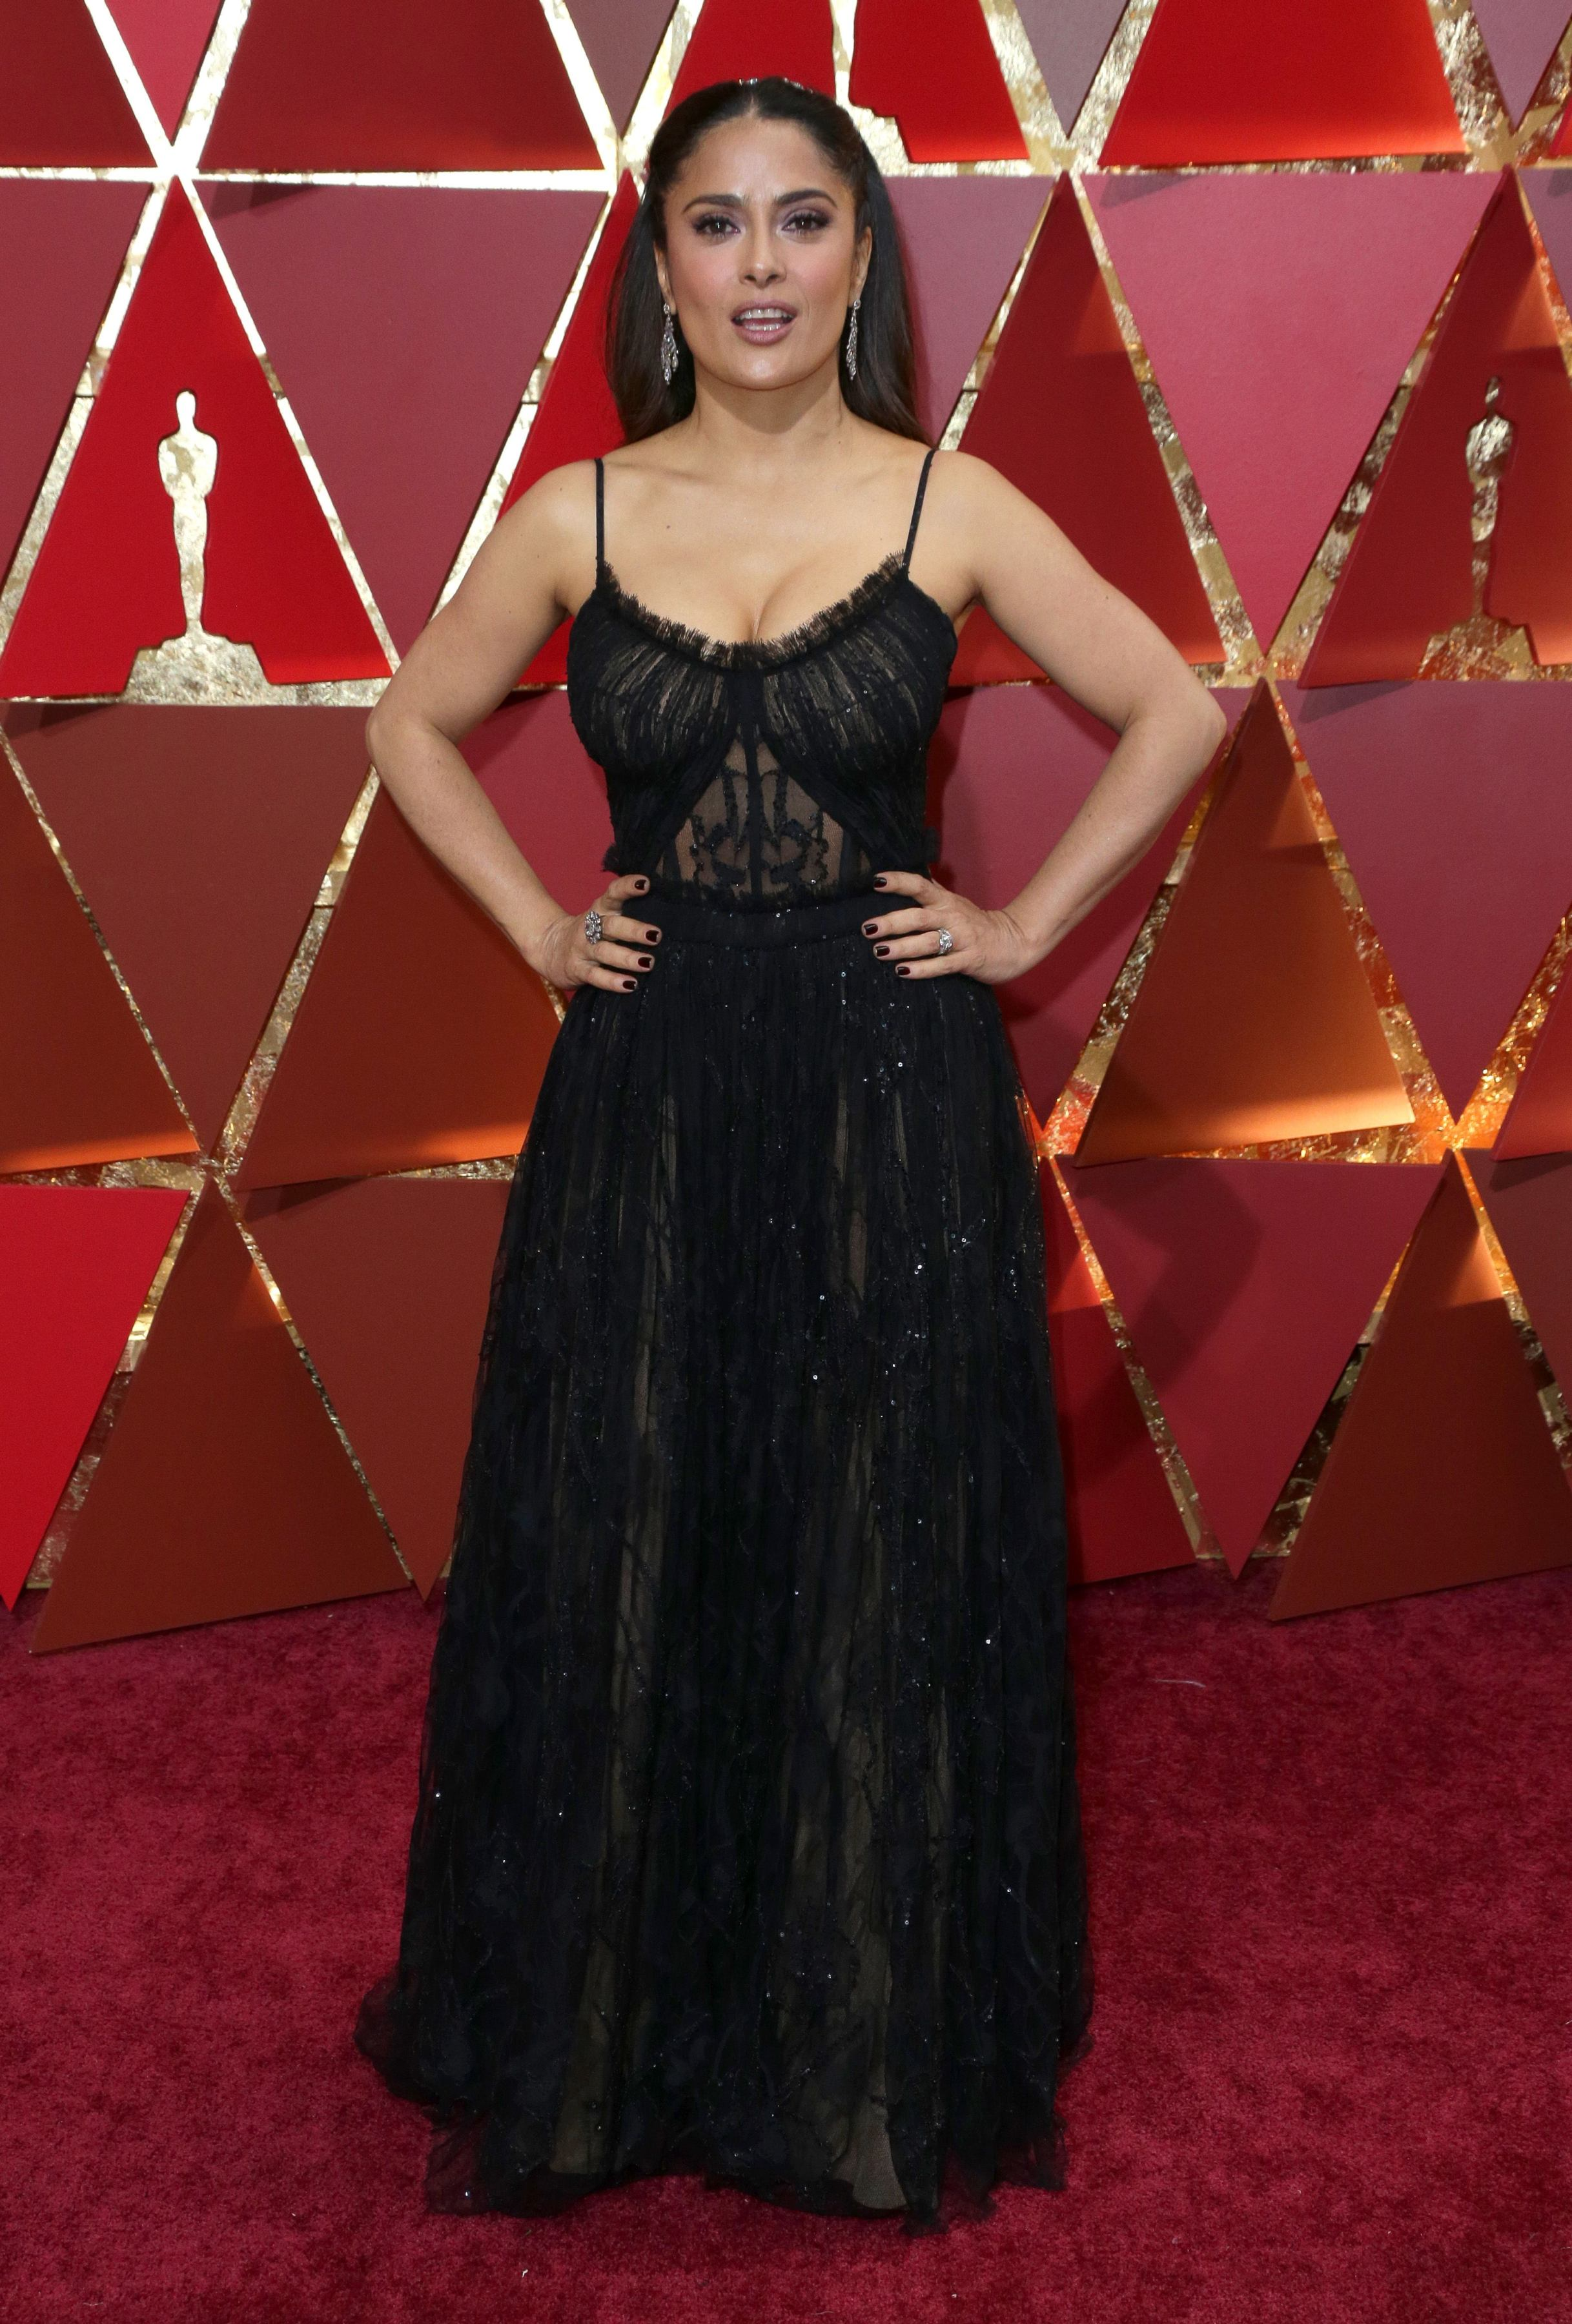 Mandatory Credit: Photo by Jim Smeal/BEI/Shutterstock (8434881kp) Salma Hayek 89th Annual Academy Awards, Arrivals, Los Angeles, USA - 26 Feb 2017